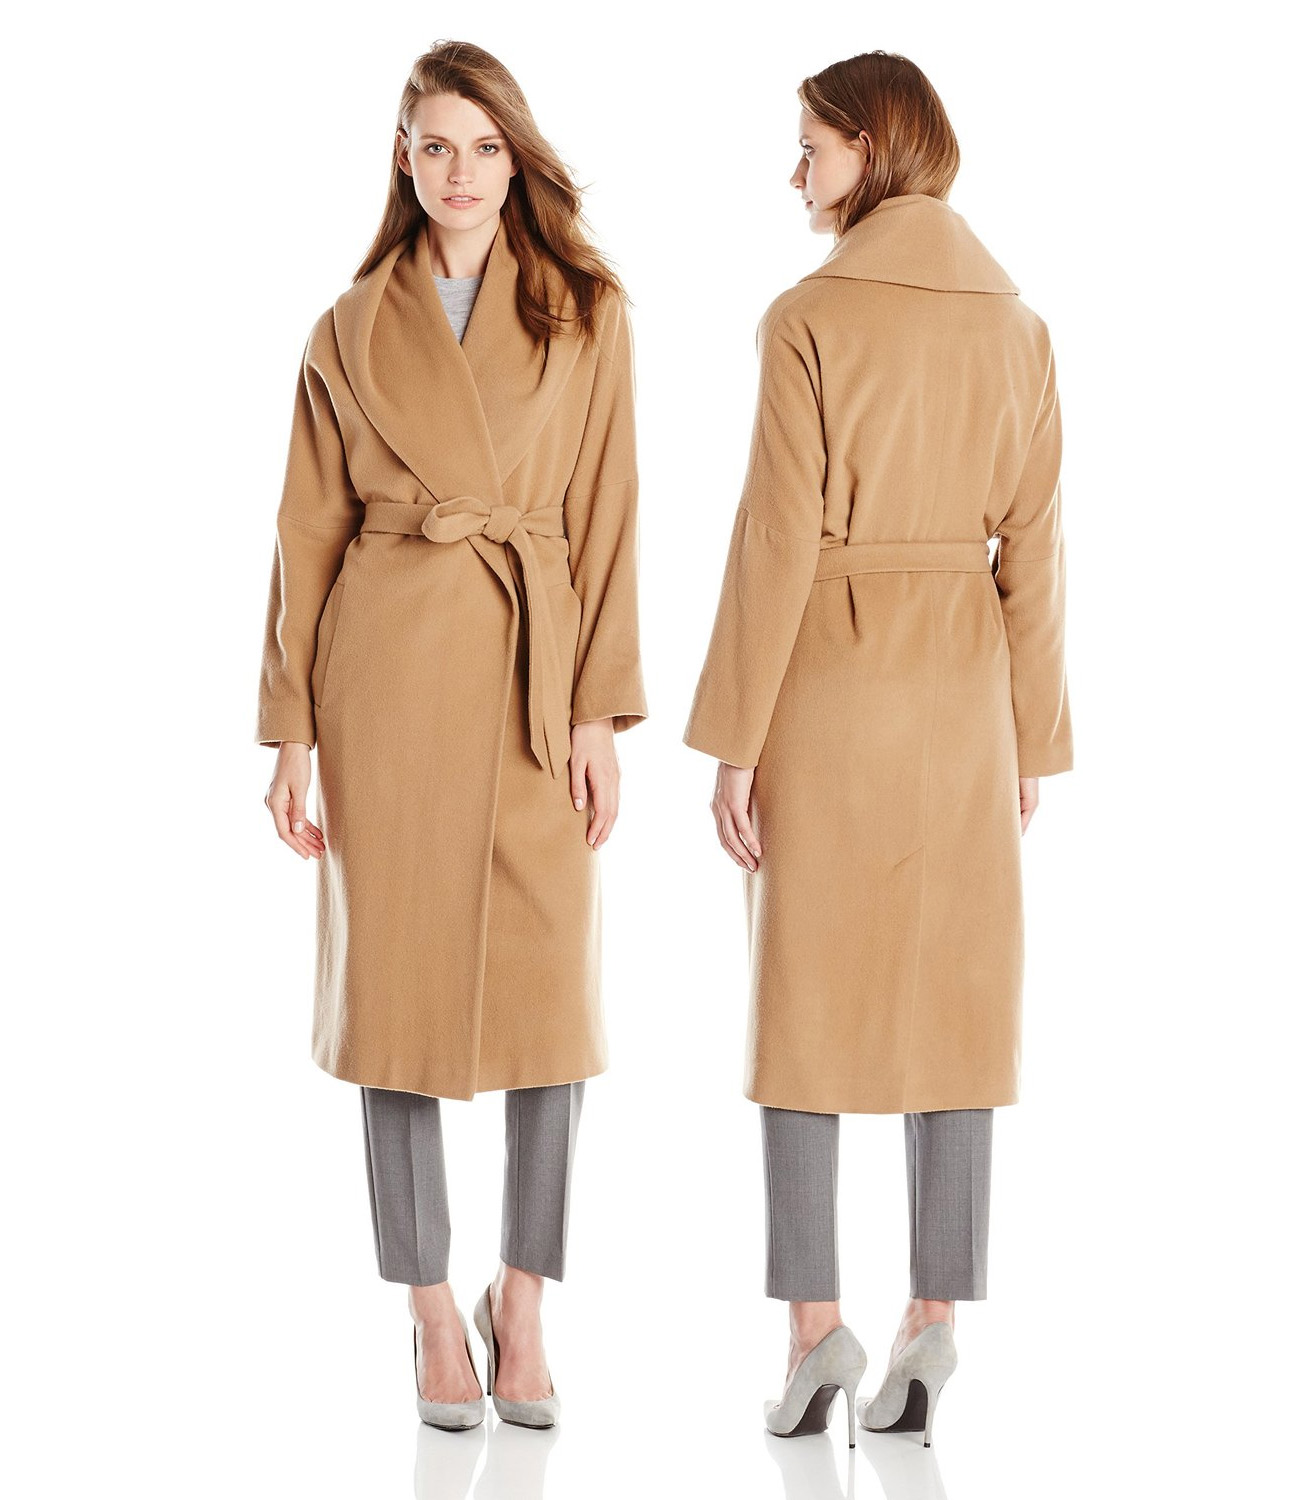 Helene Berman Womens Shawl-Collar Long Wrap Coat camel trench coat winter